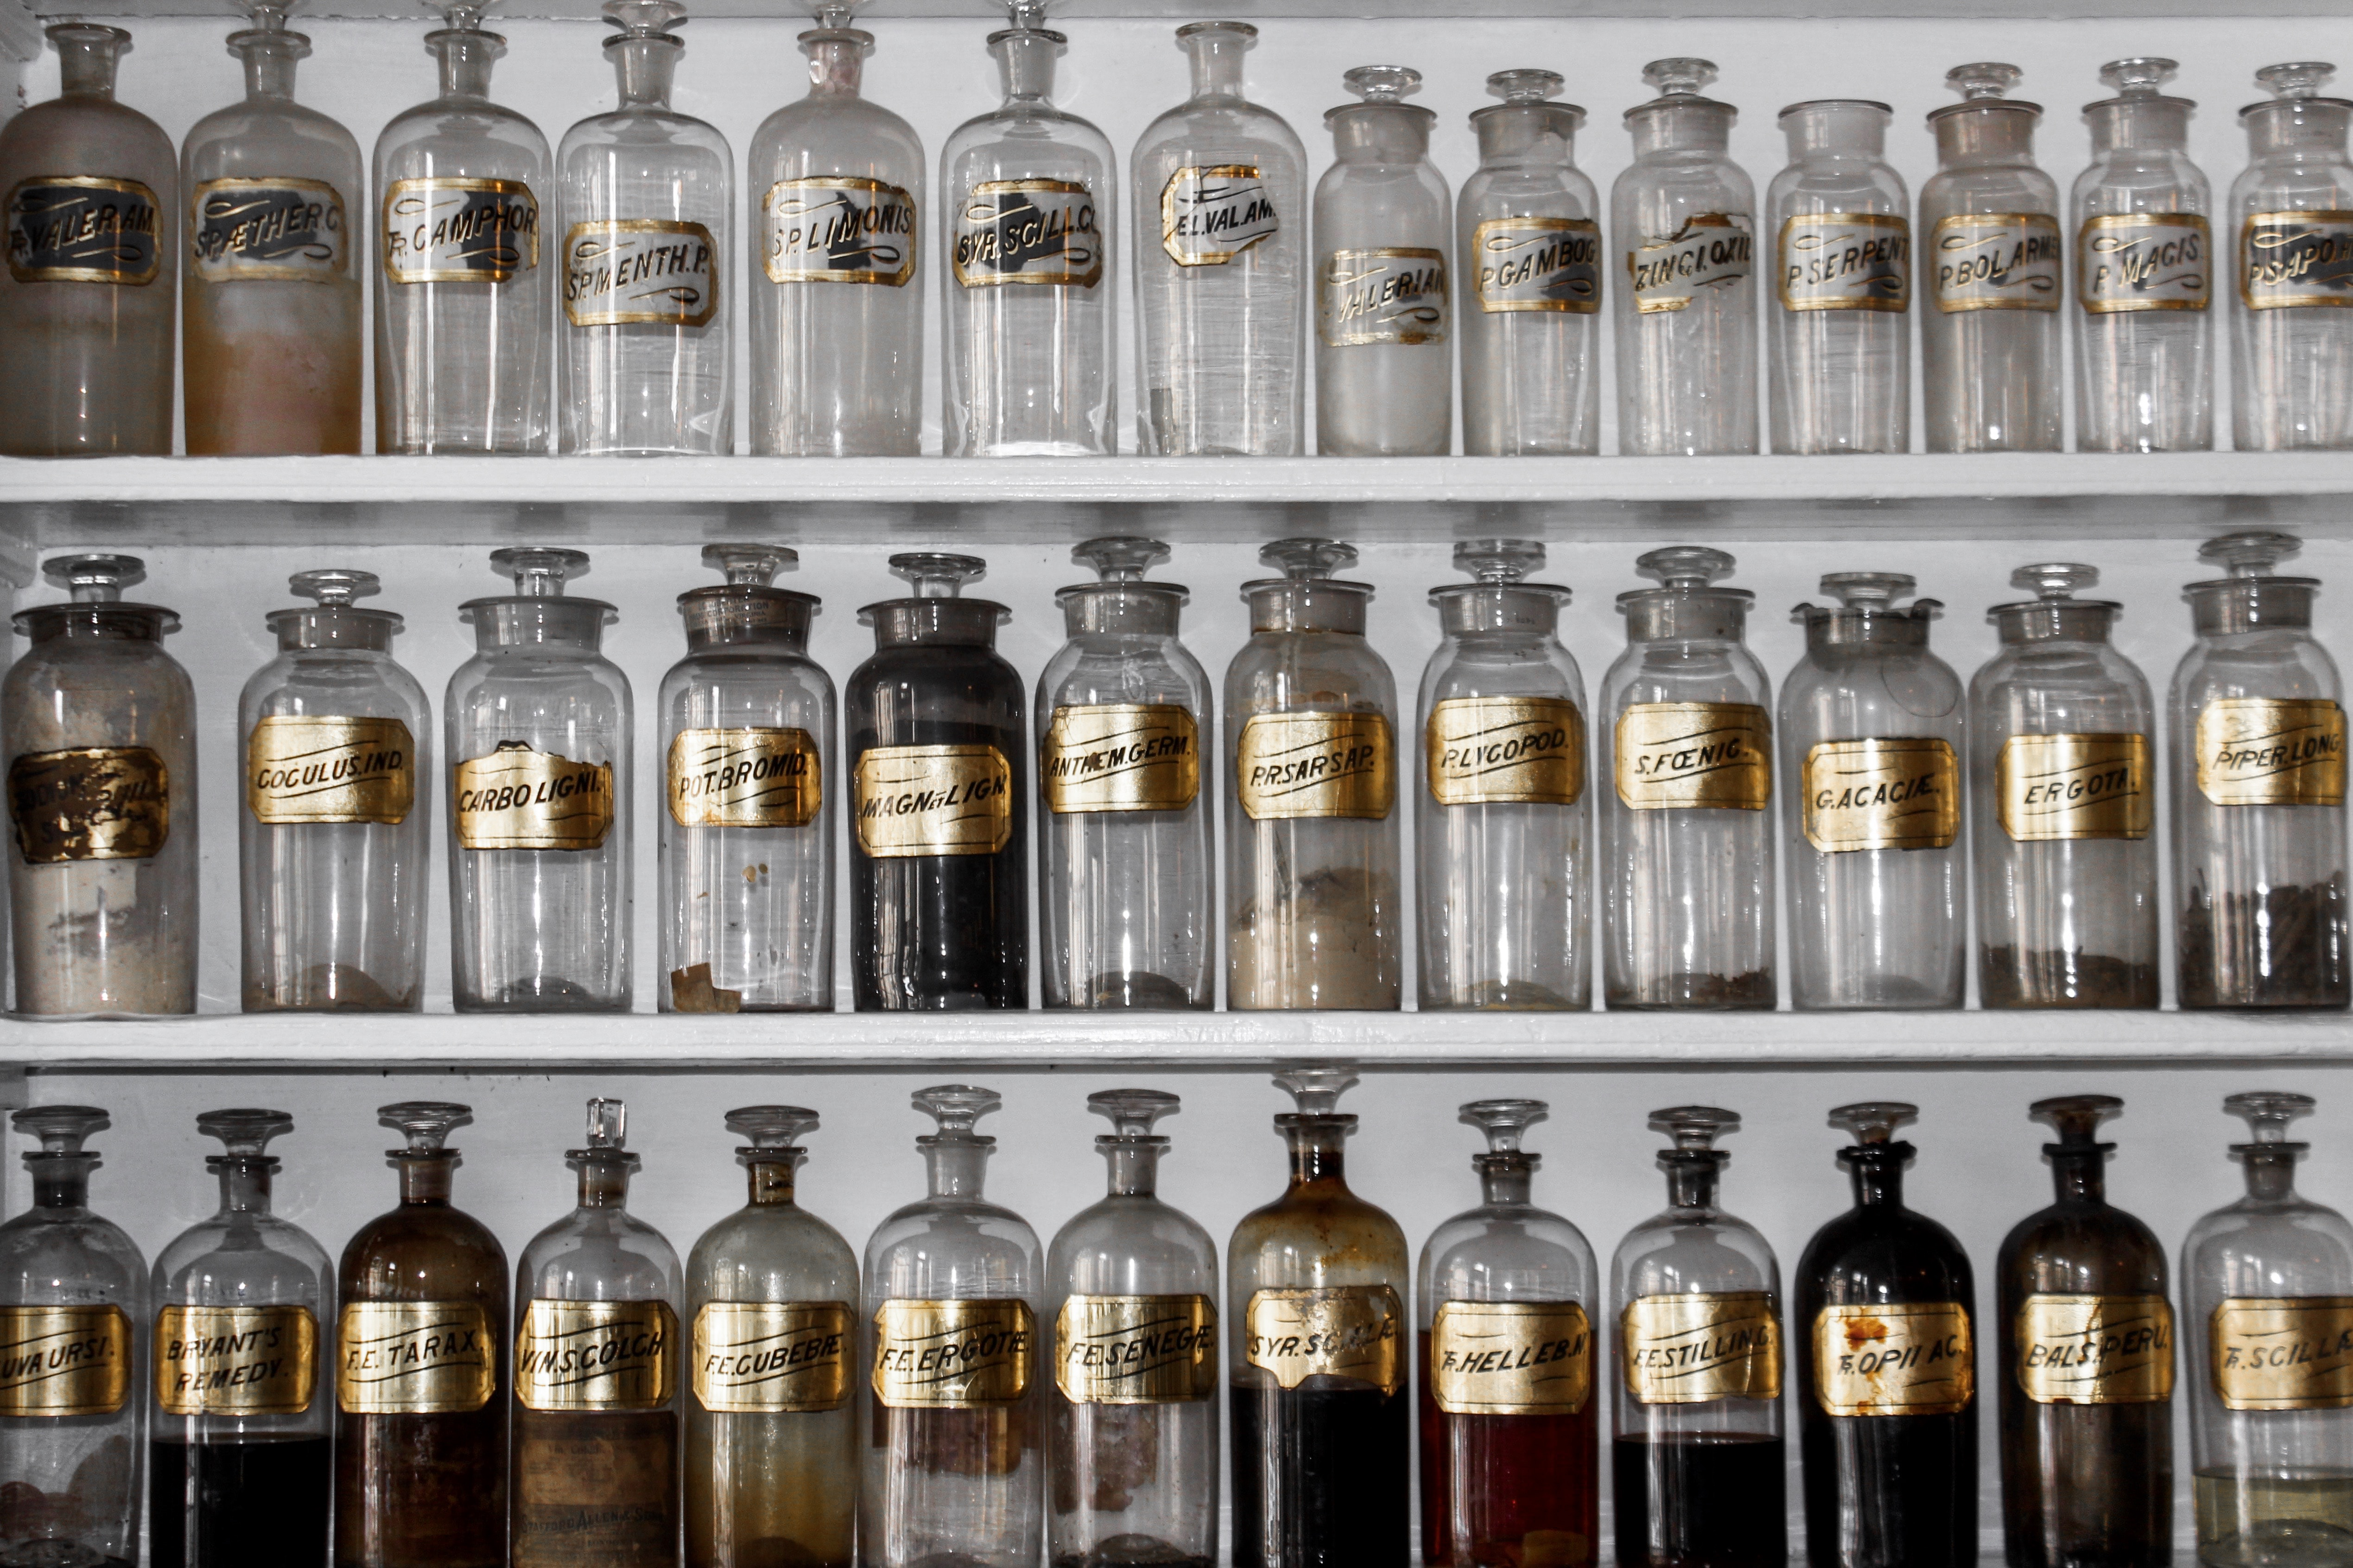 Shelves with bottles of fragrance ingredients in an apothecary